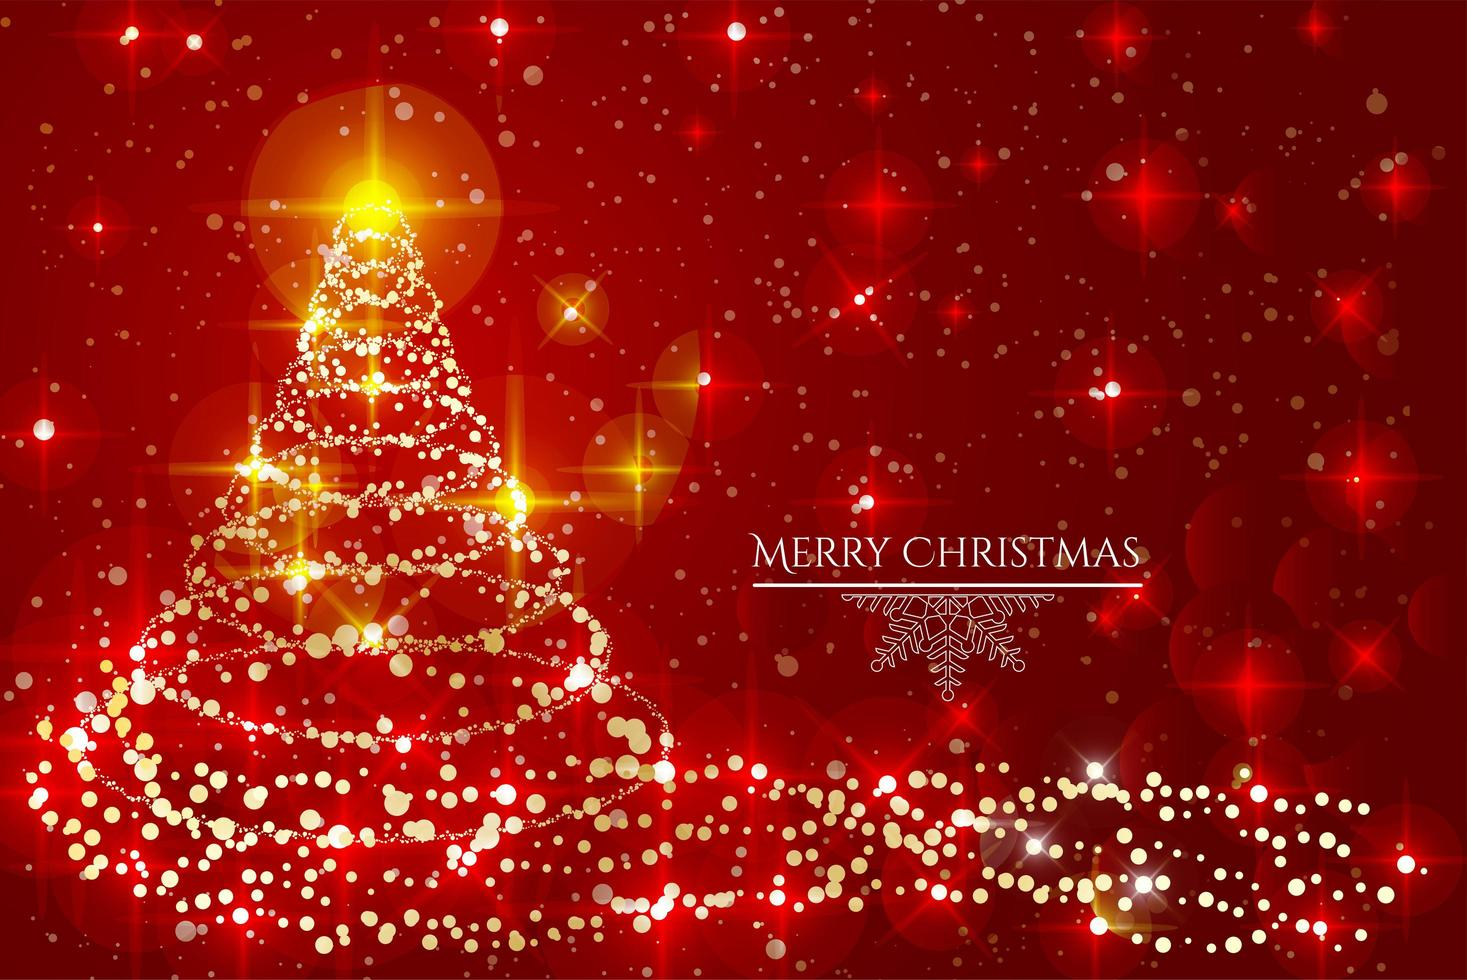 Merry Christmas background design vector